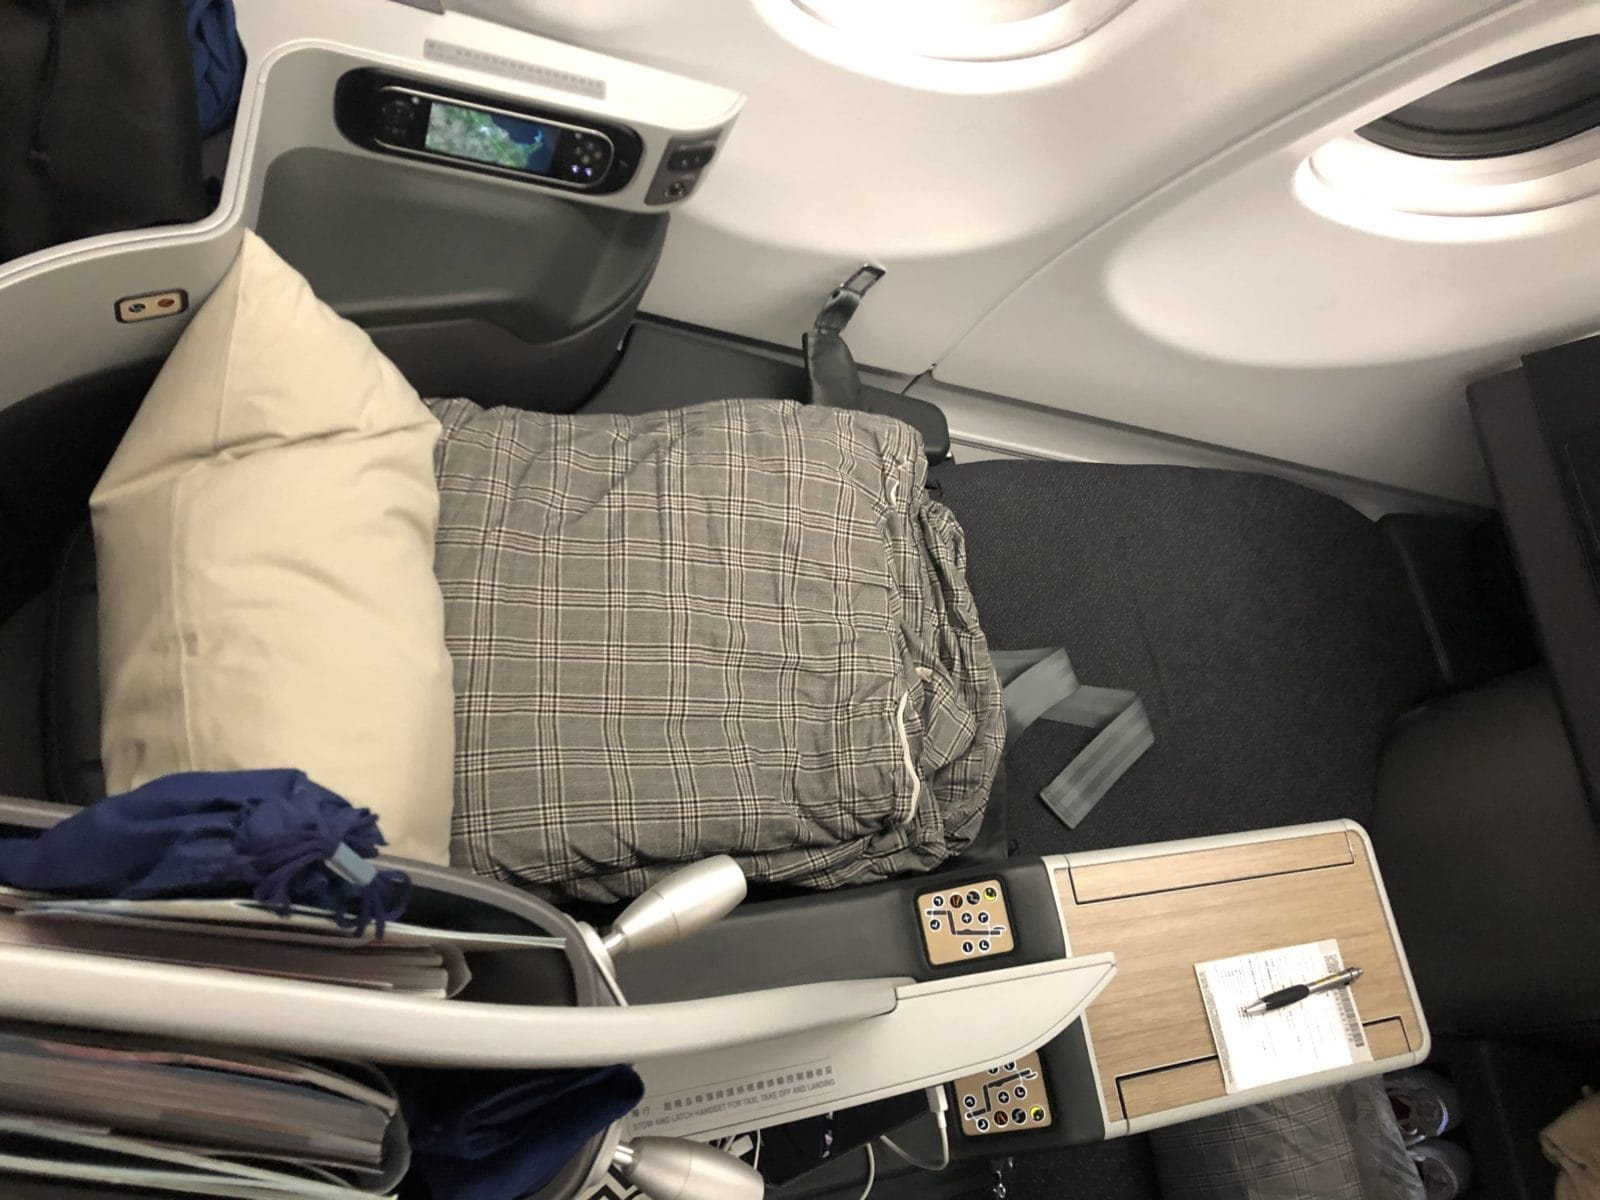 EVA Air Business Class A330-300 Sitz als Bett